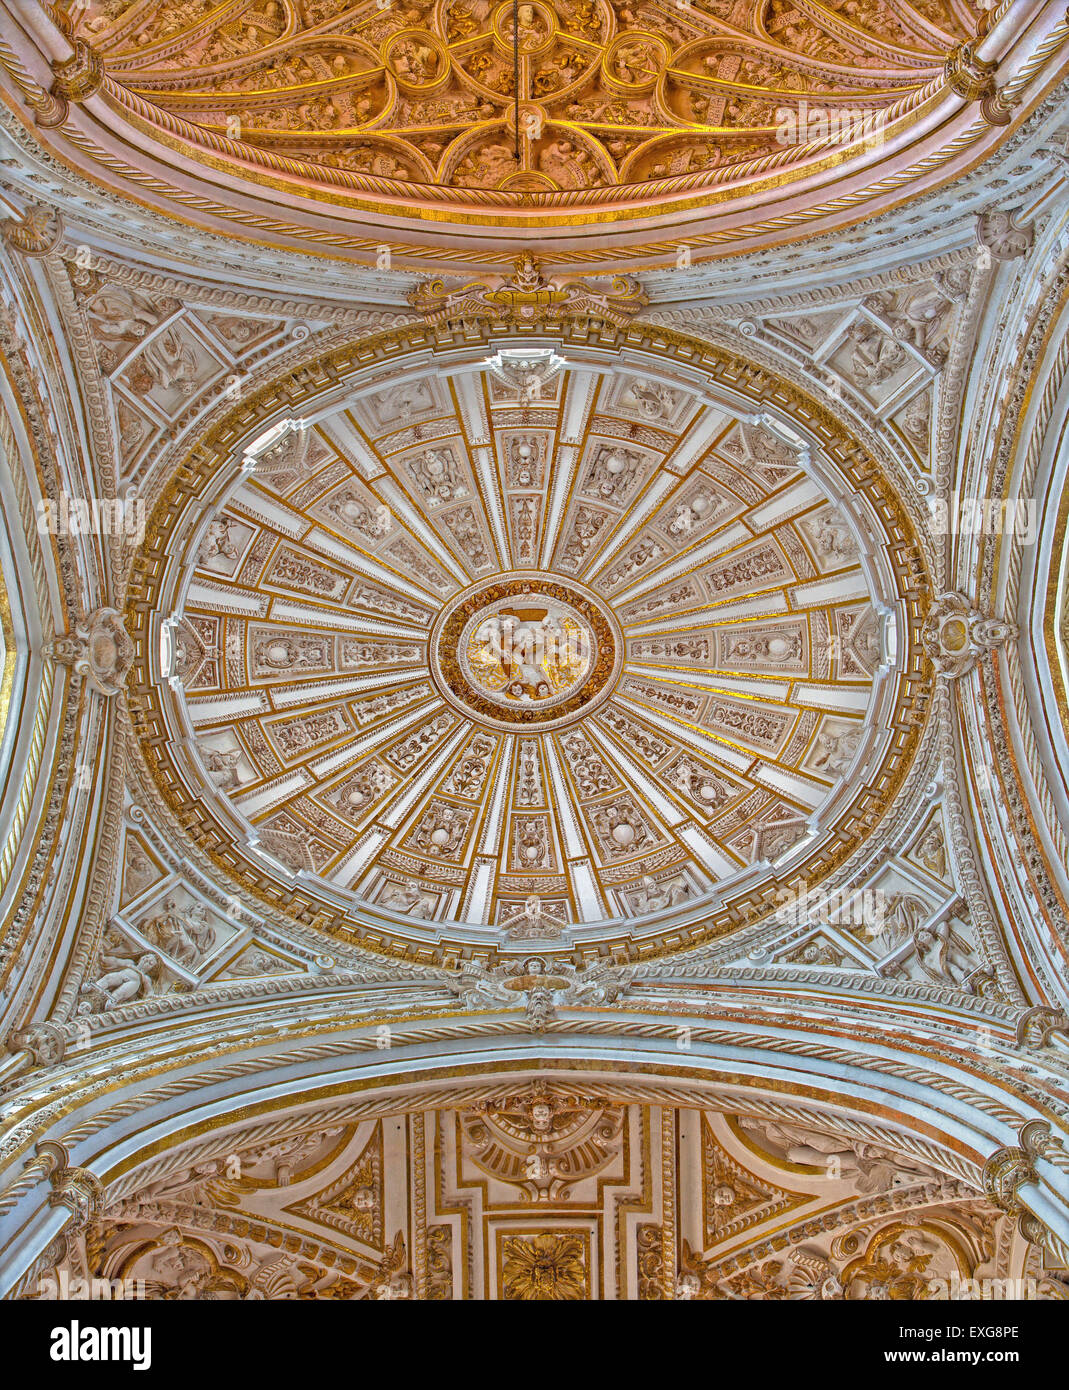 CORDOBA, SPAIN - MAY 28, 2015: Cupola of The Main chapel with the gothic and baroque vault. - Stock Image